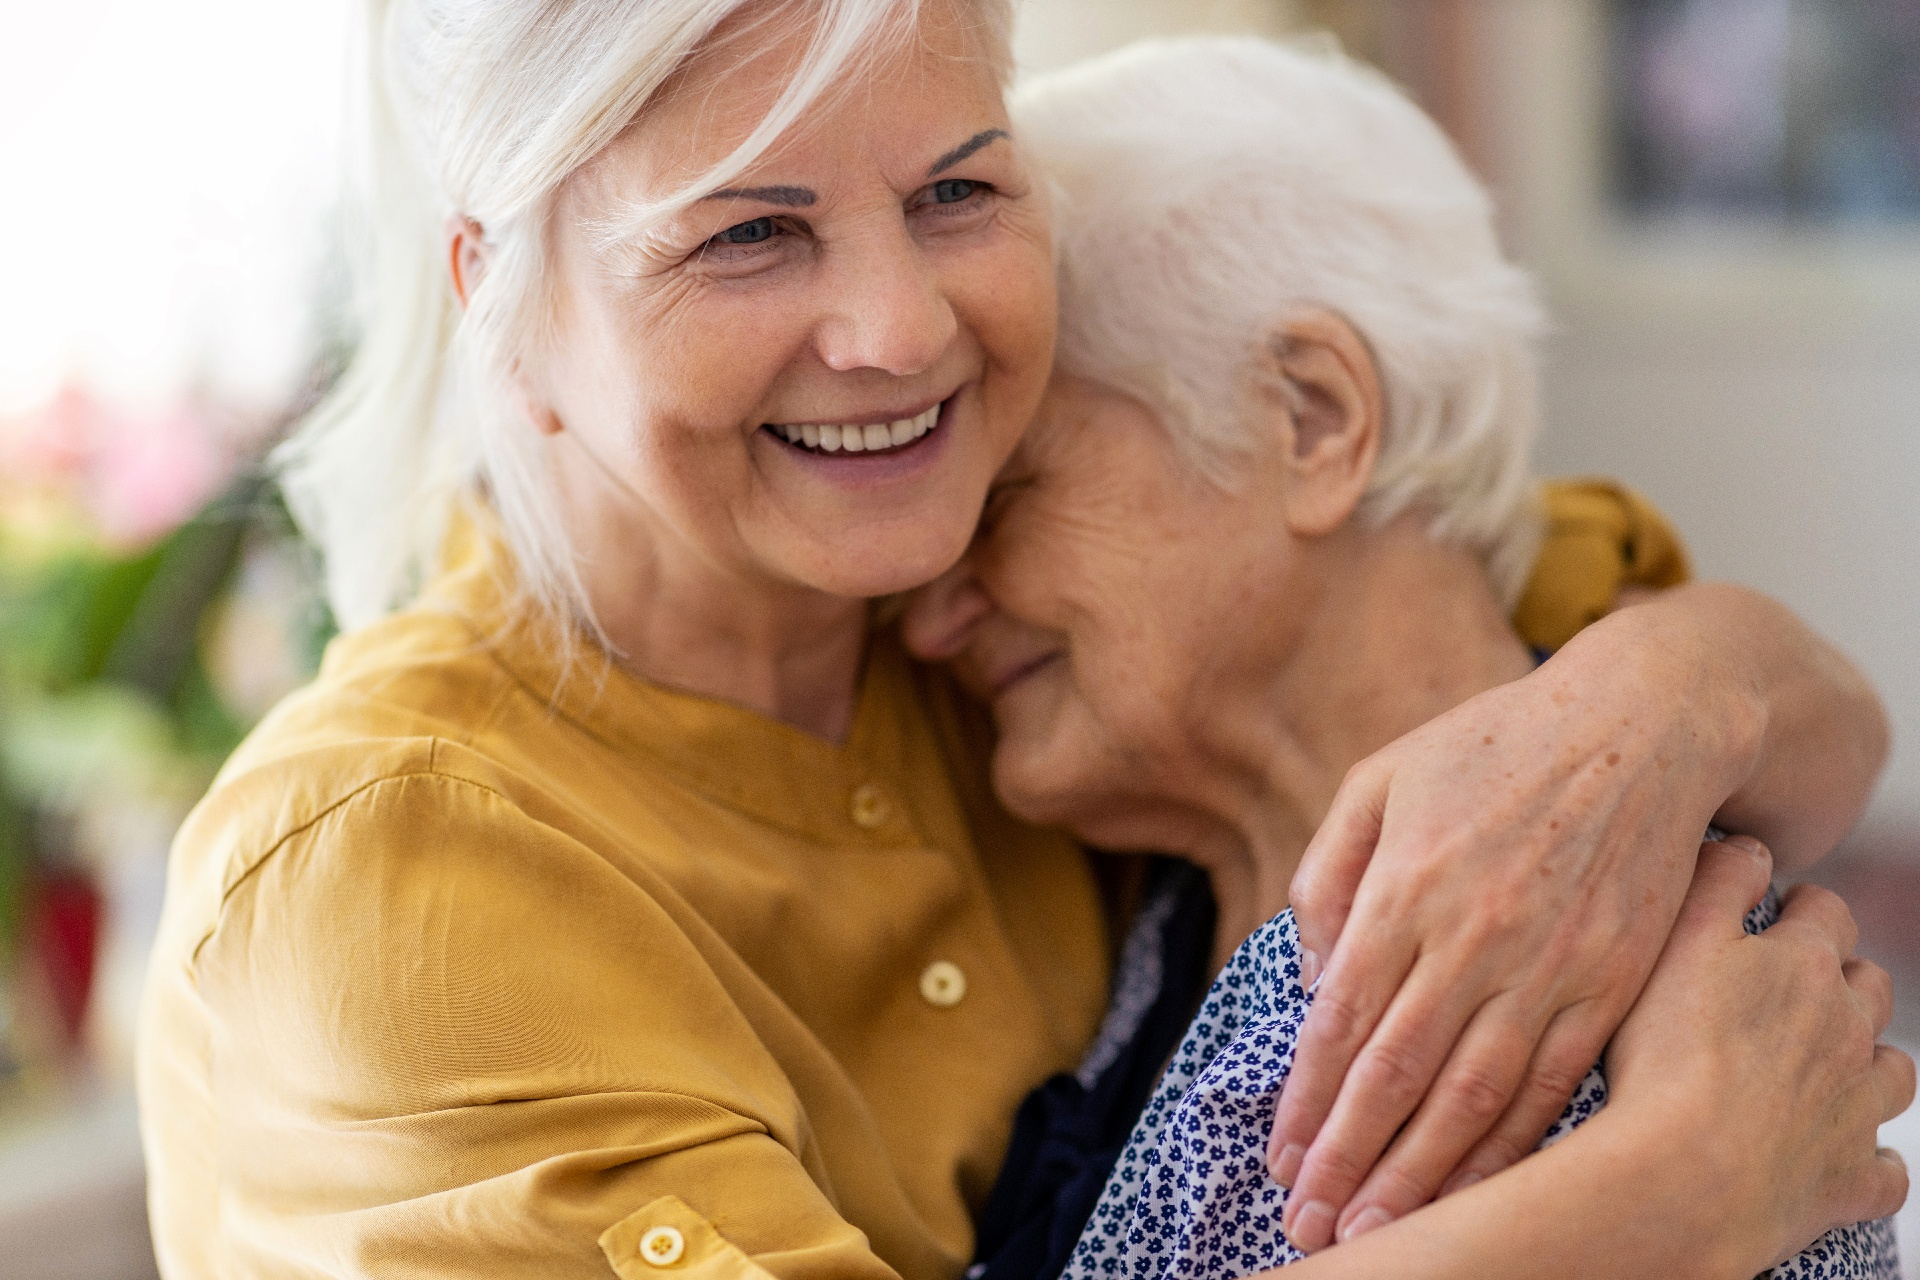 A mother and daughter hugging and smiling